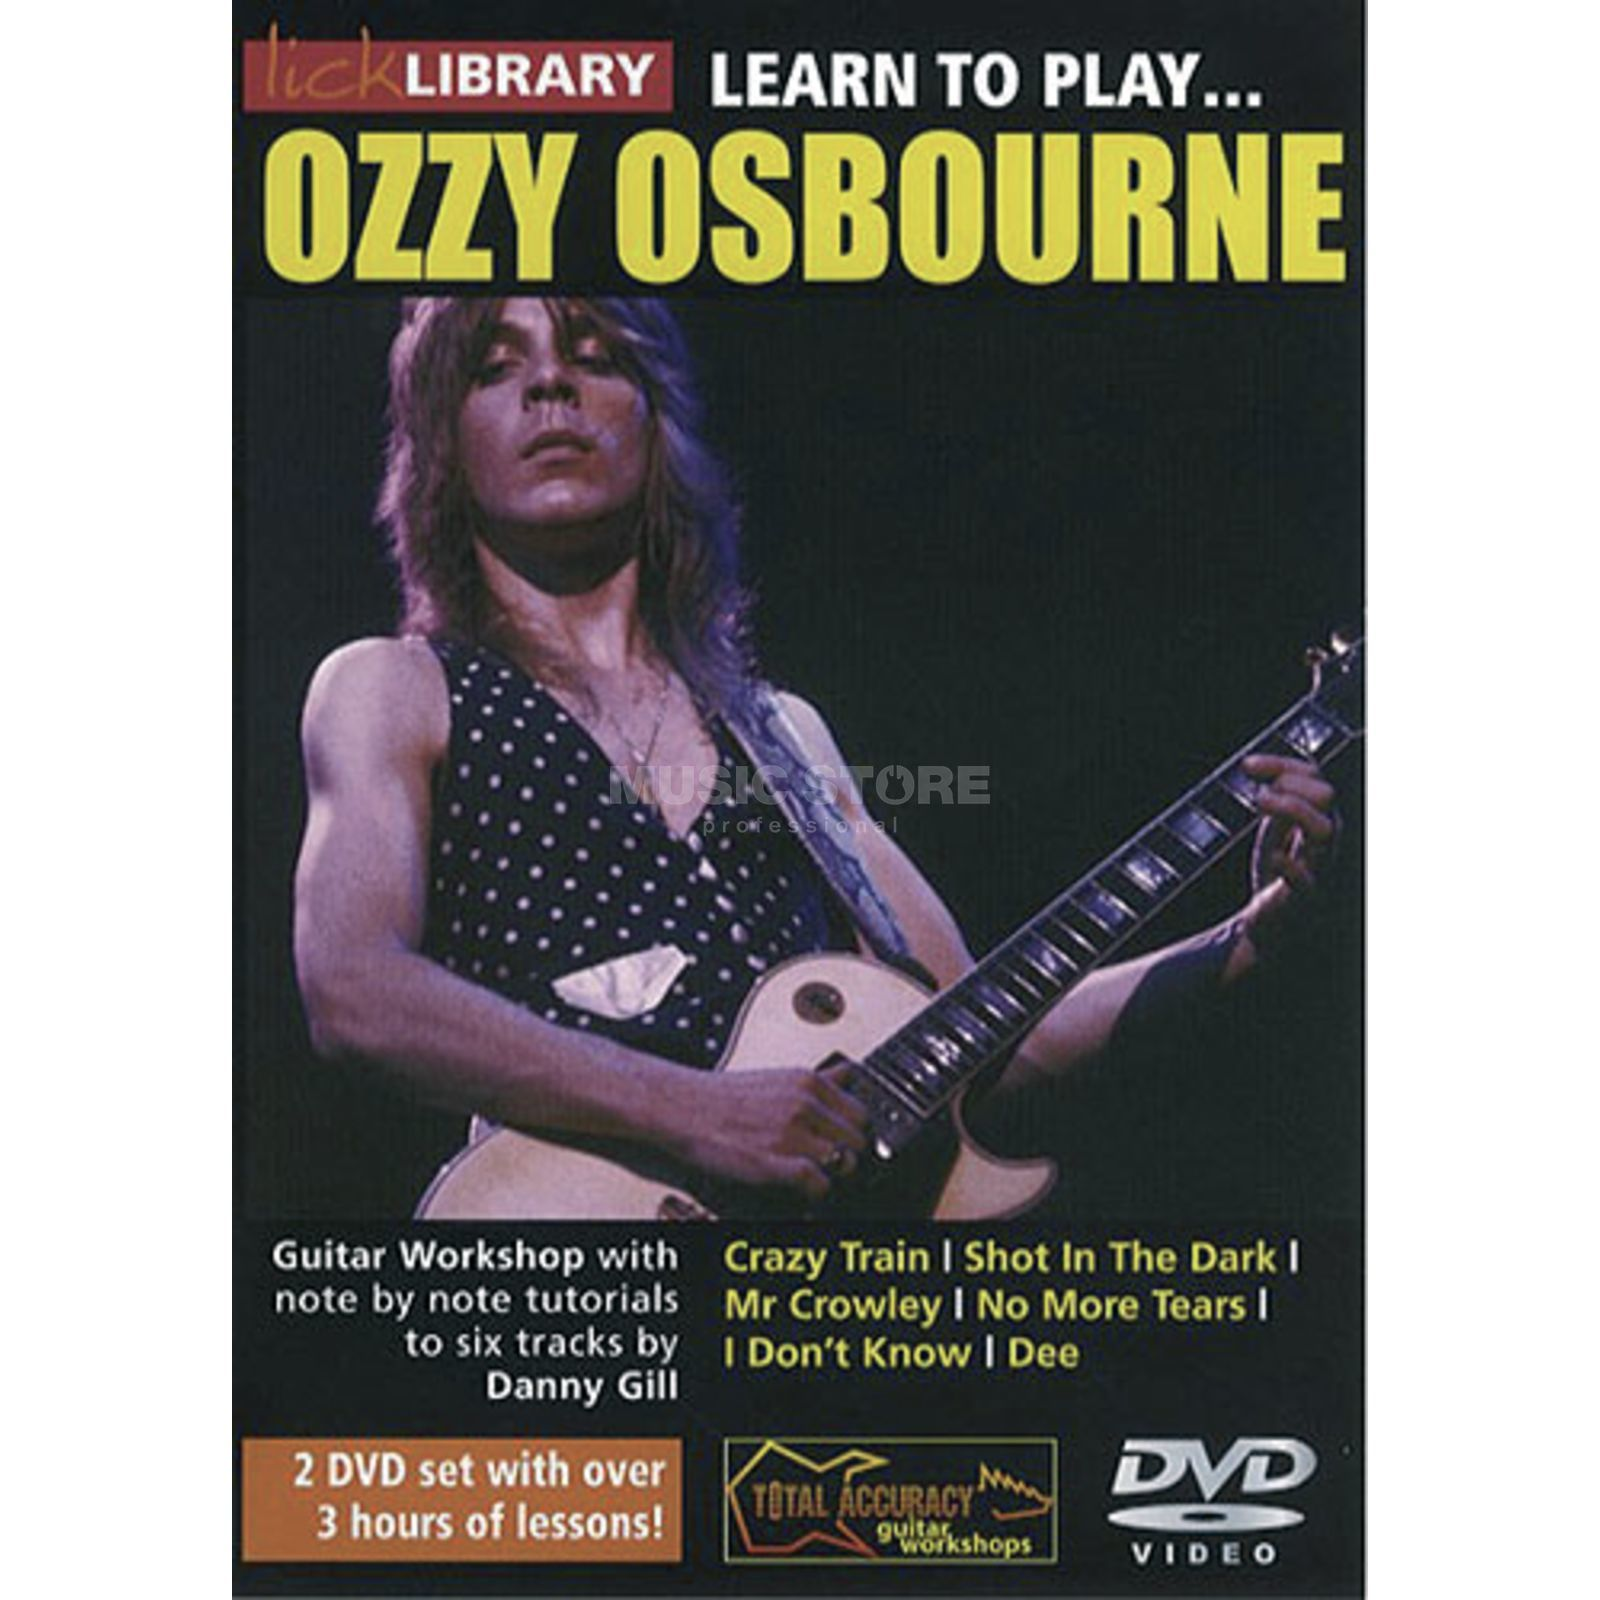 Roadrock International Lick Library: Learn To Play Ozzy Osbourne DVD Produktbillede